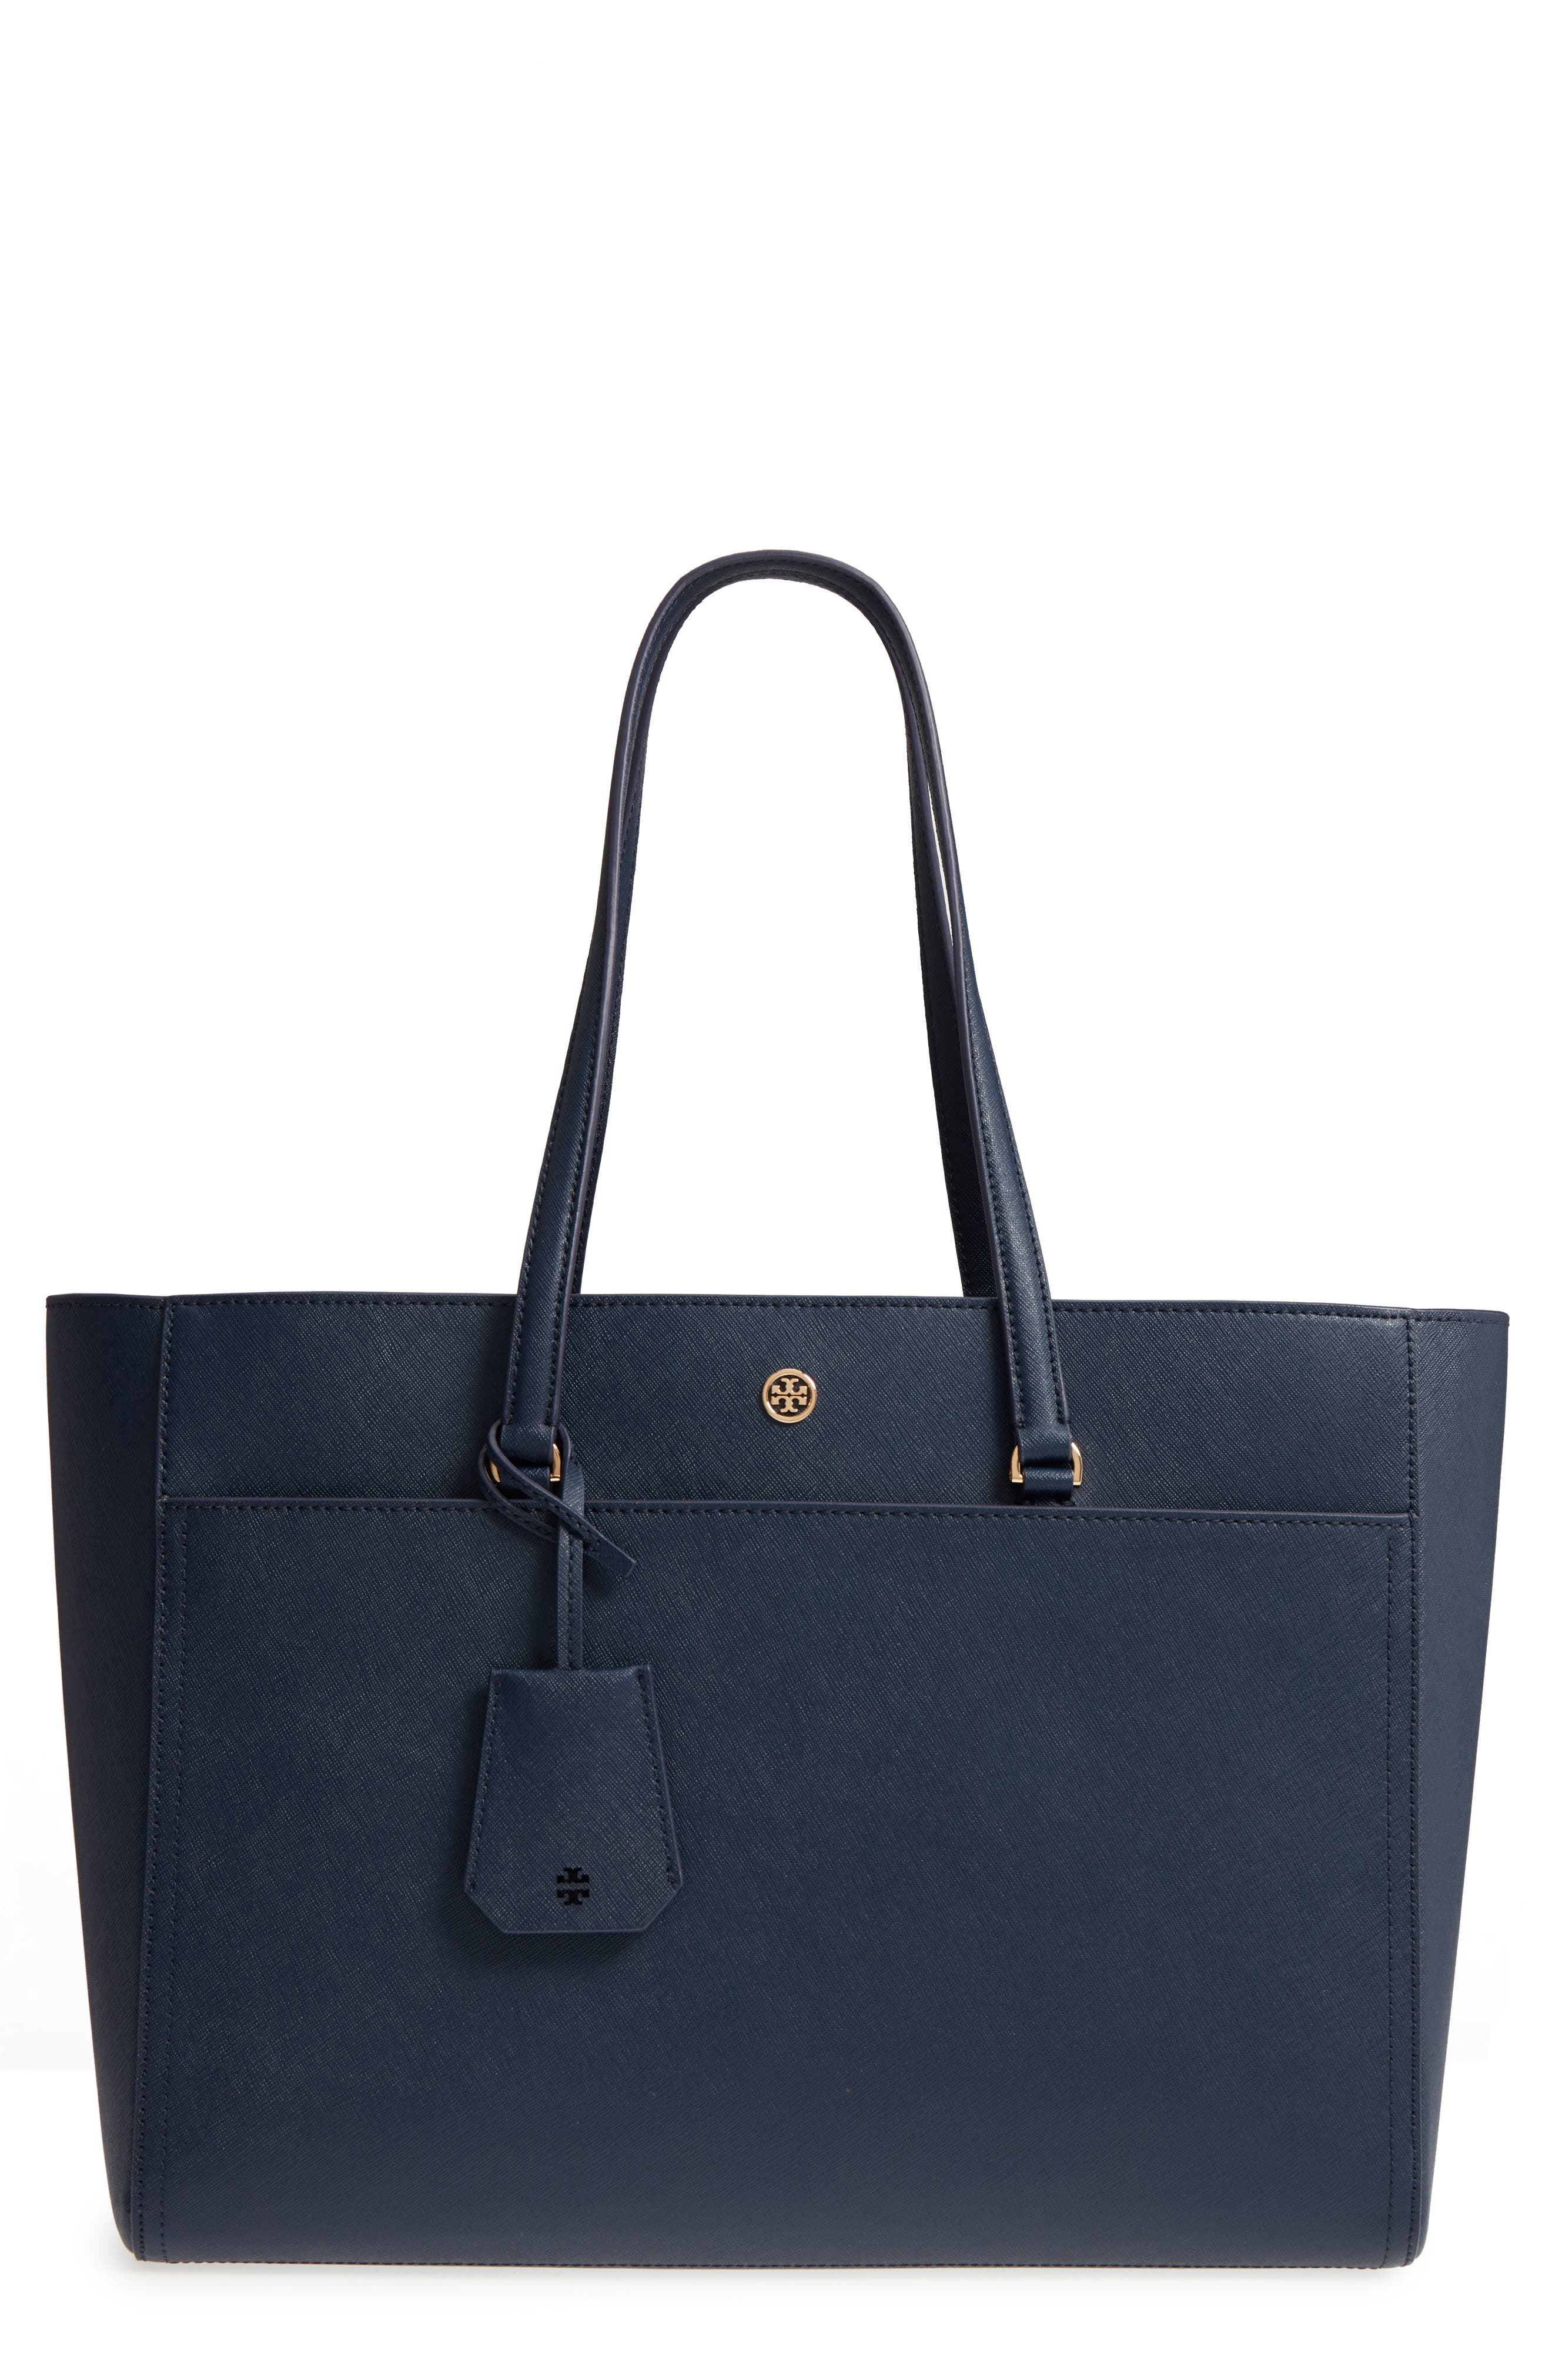 Robinson Leather Tote,                         Main,                         color, Royal Navy / Black